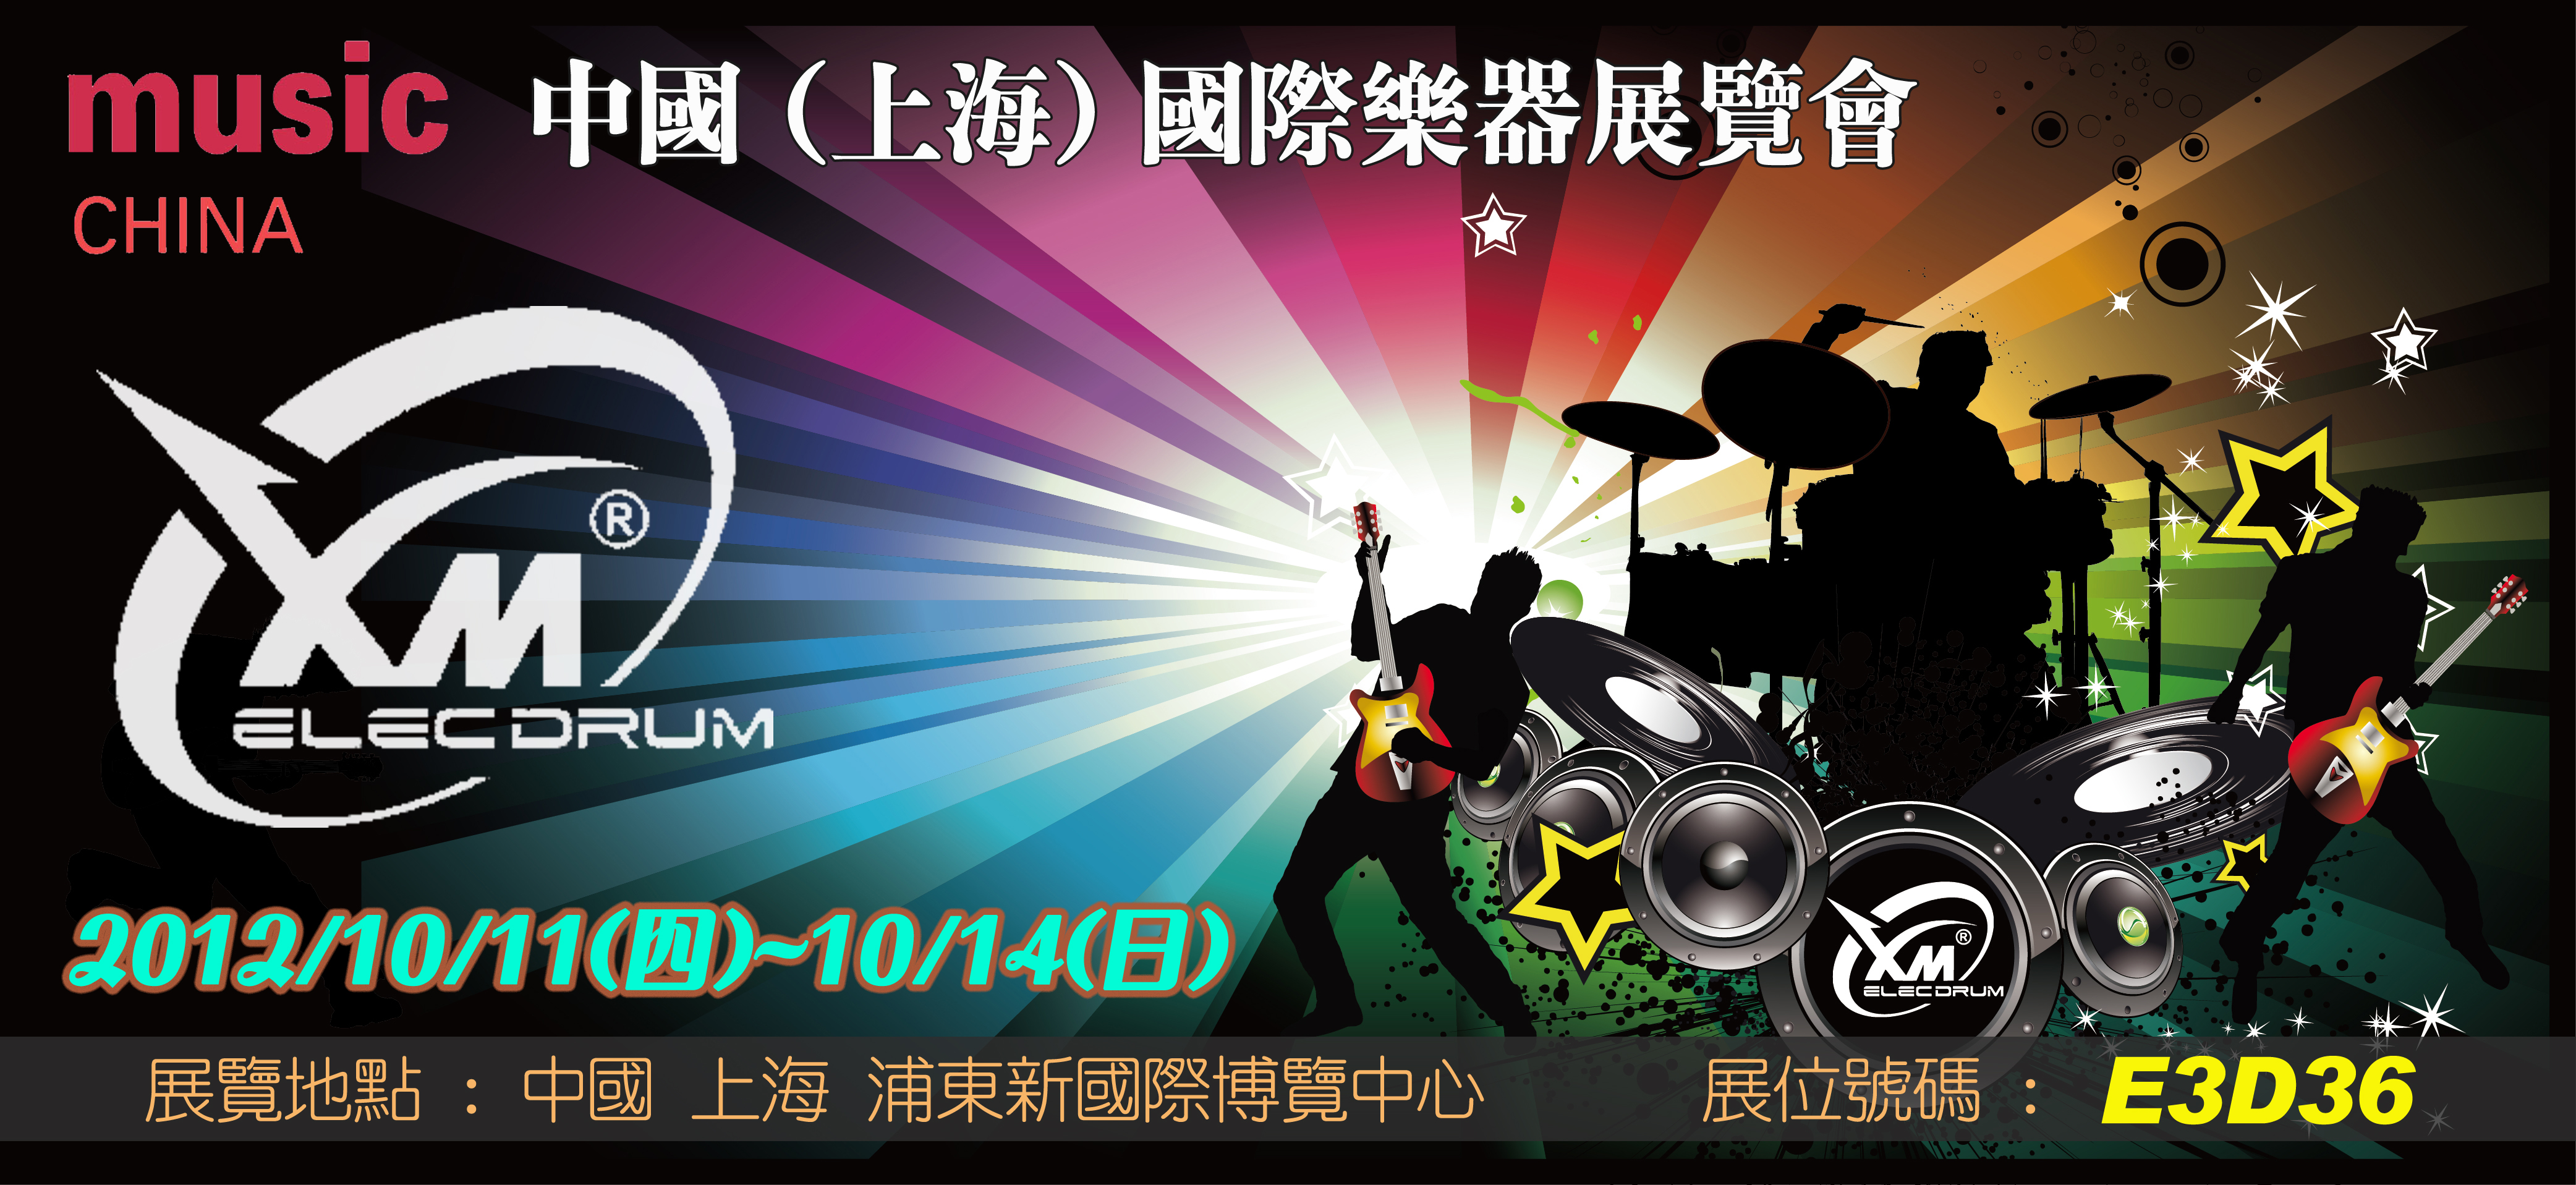 Music China Fair next week